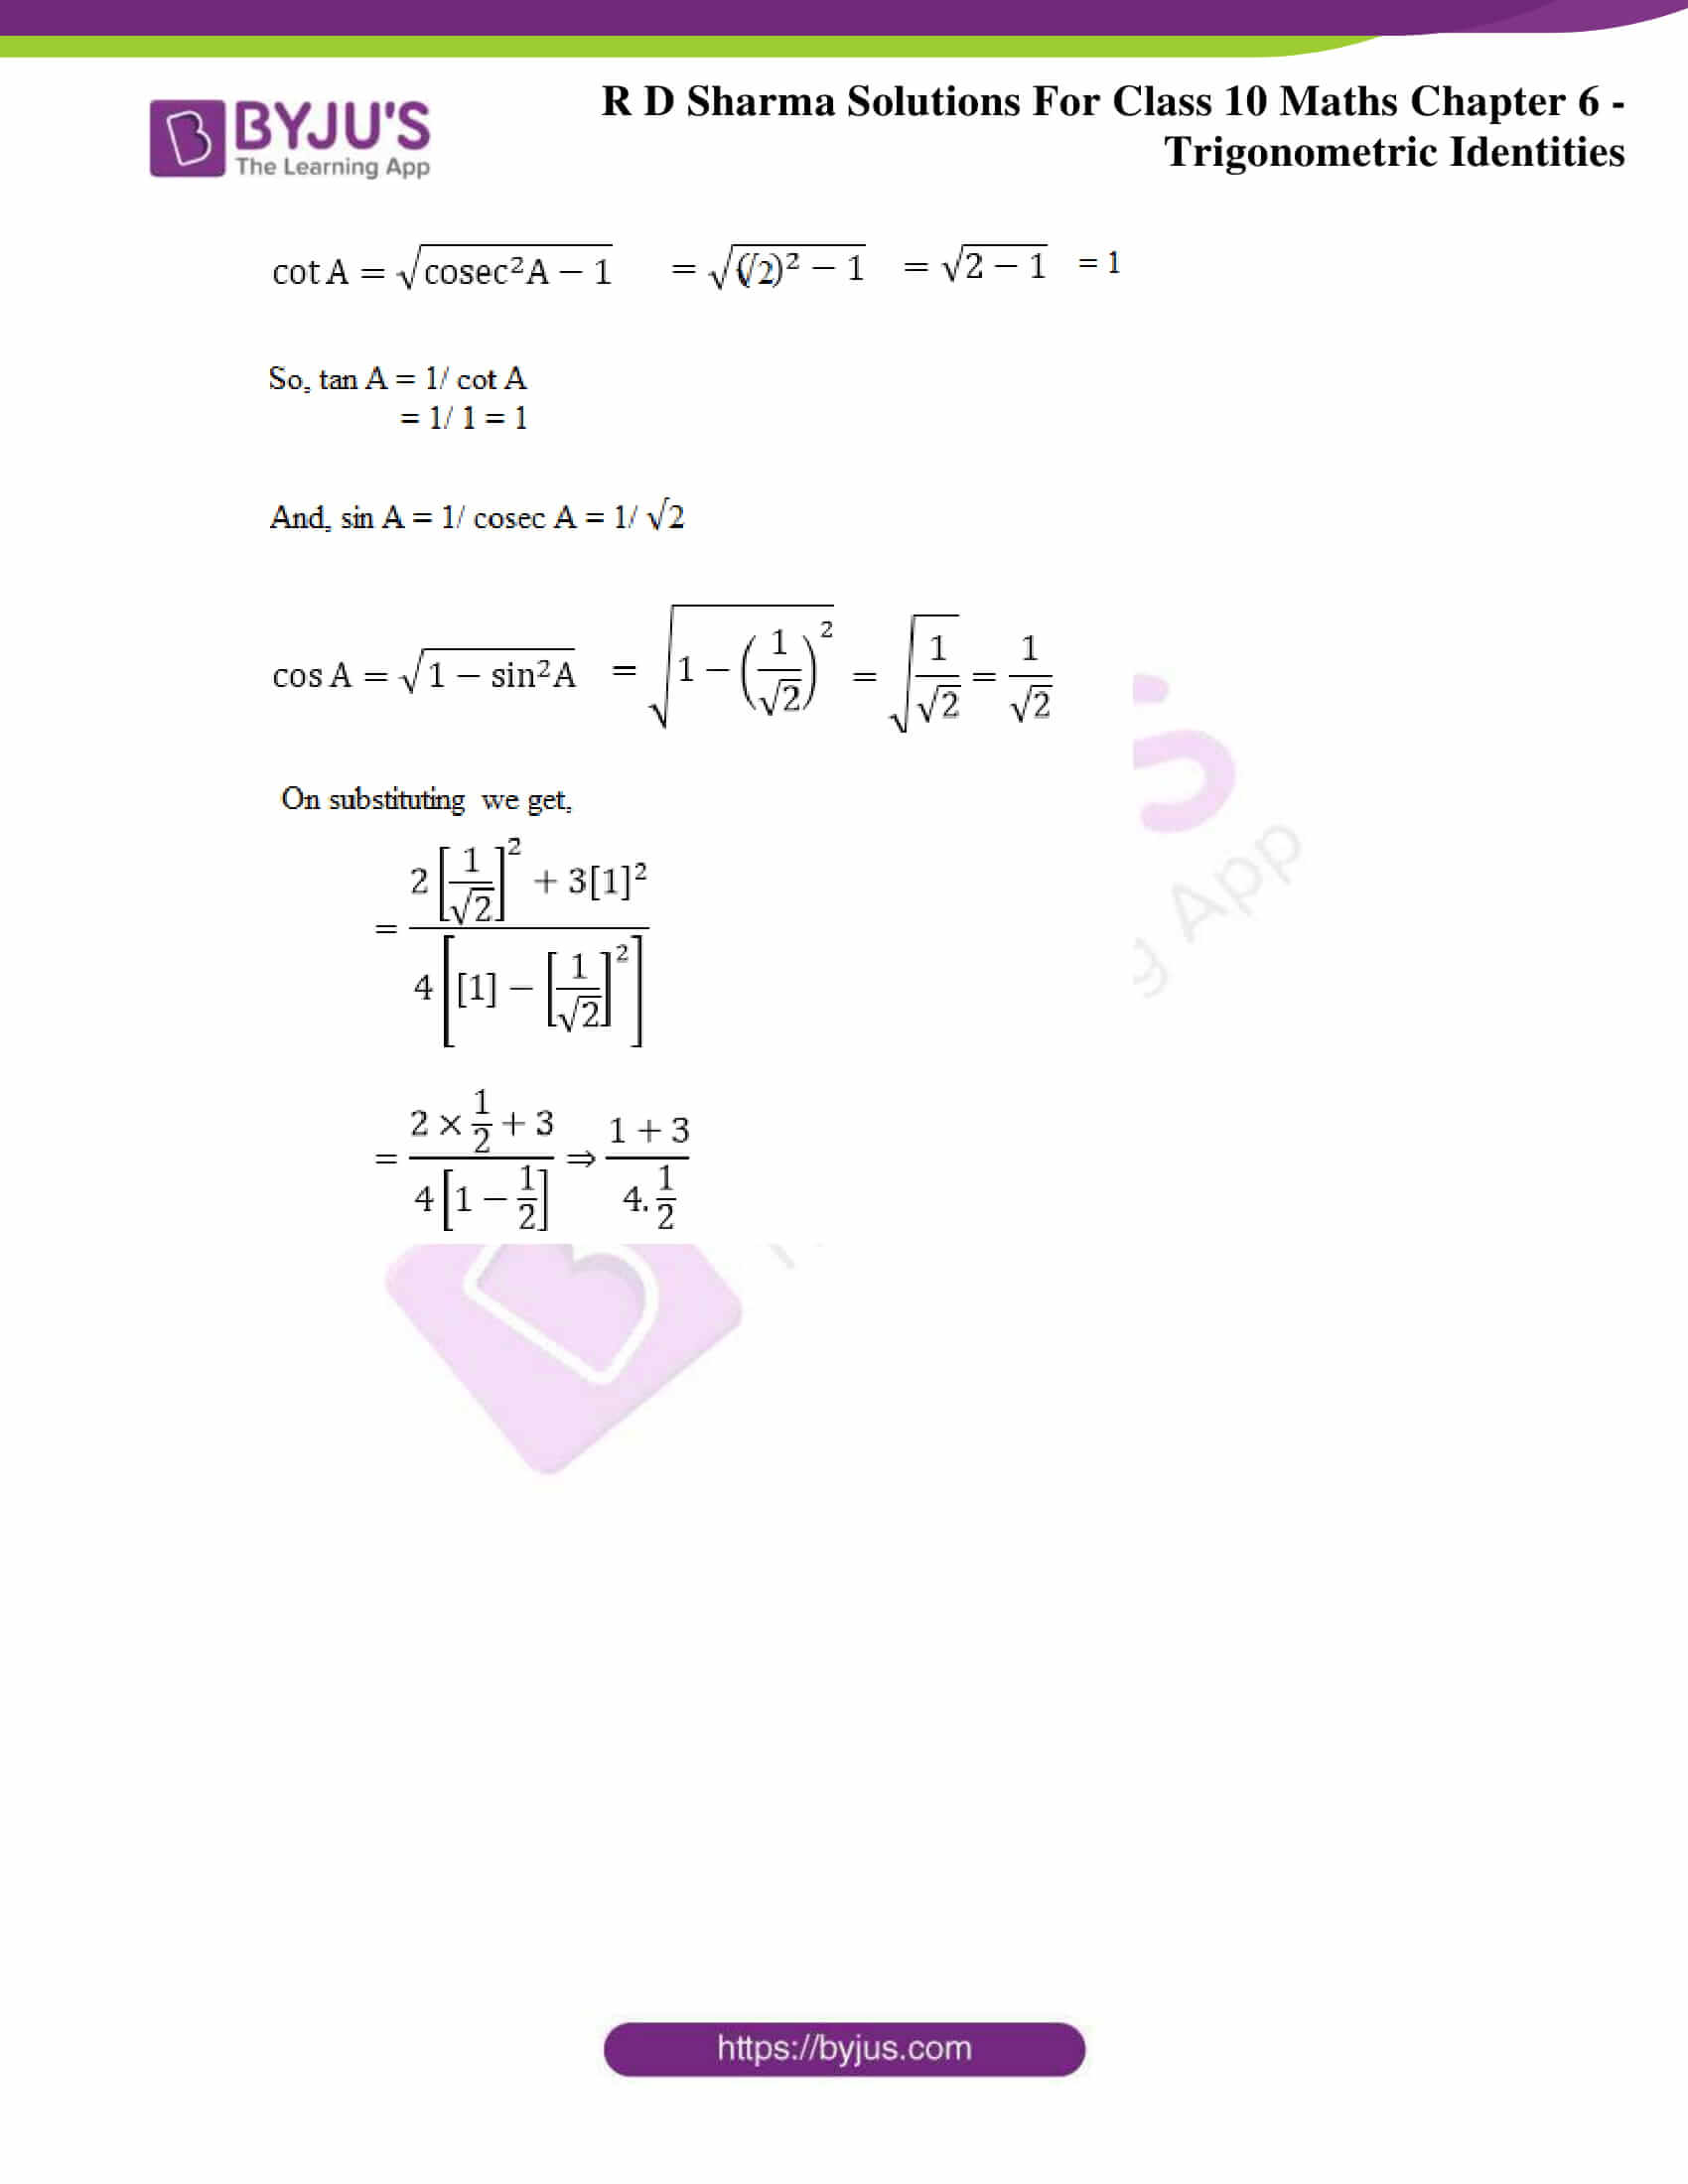 RD Sharma Solutions for Class 10 Chapter 6 Trigonometric Identities 35